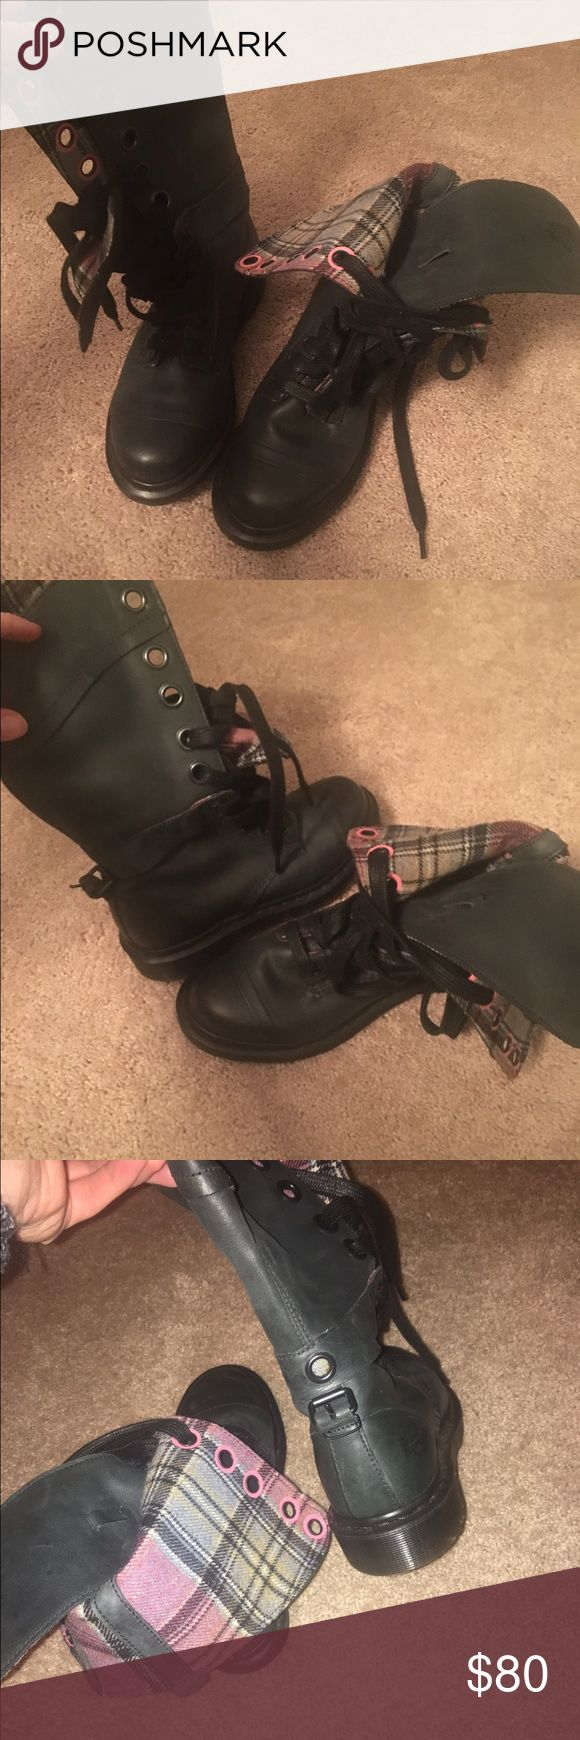 Dr martens women's boot High boots size 7 like new Dr. Martens Shoes Combat & Moto Boots